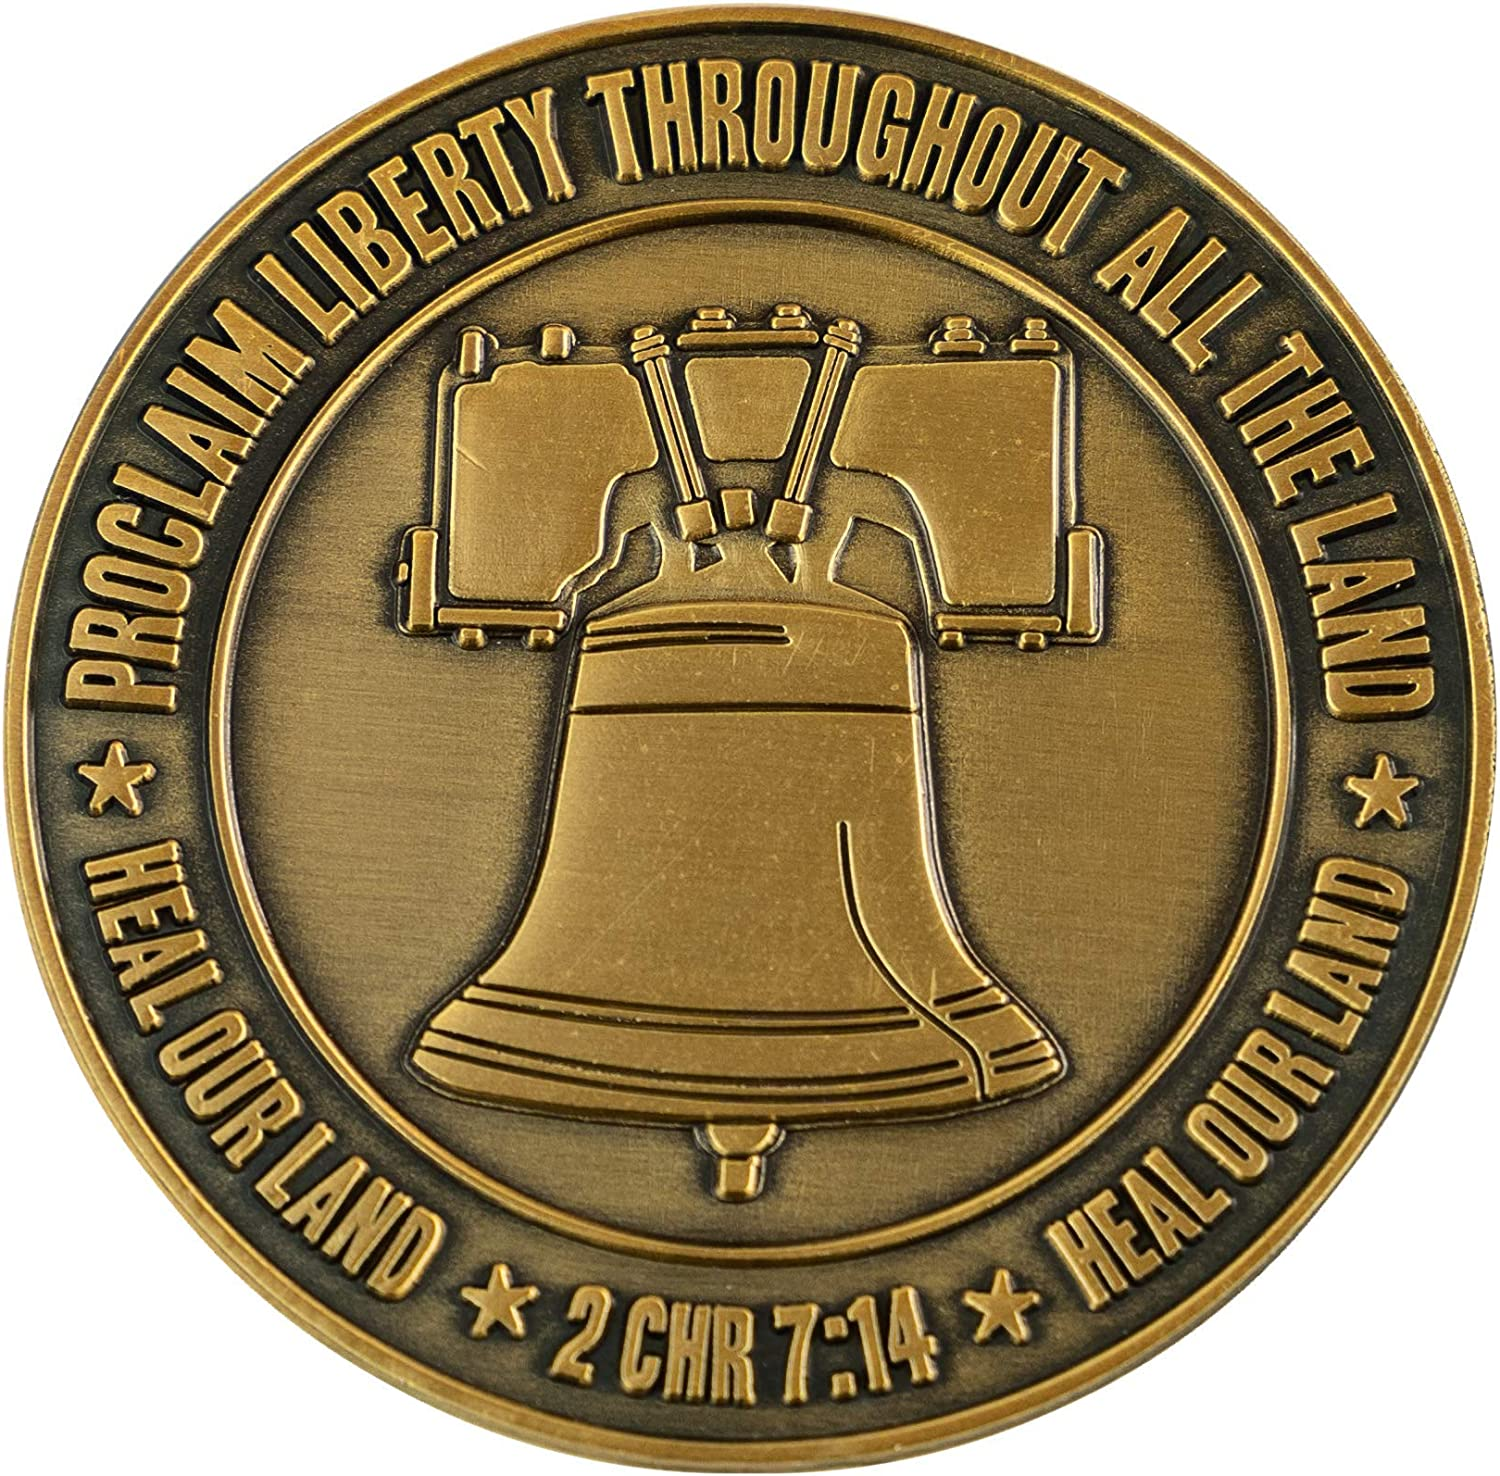 Pledge of Allegiance Coin, Liberty Bell & American Flag Patriotic Military Challenge Coin, Heal Our Land, Freedom Christian Religious Antique Gold Plated Prayer Token Gift